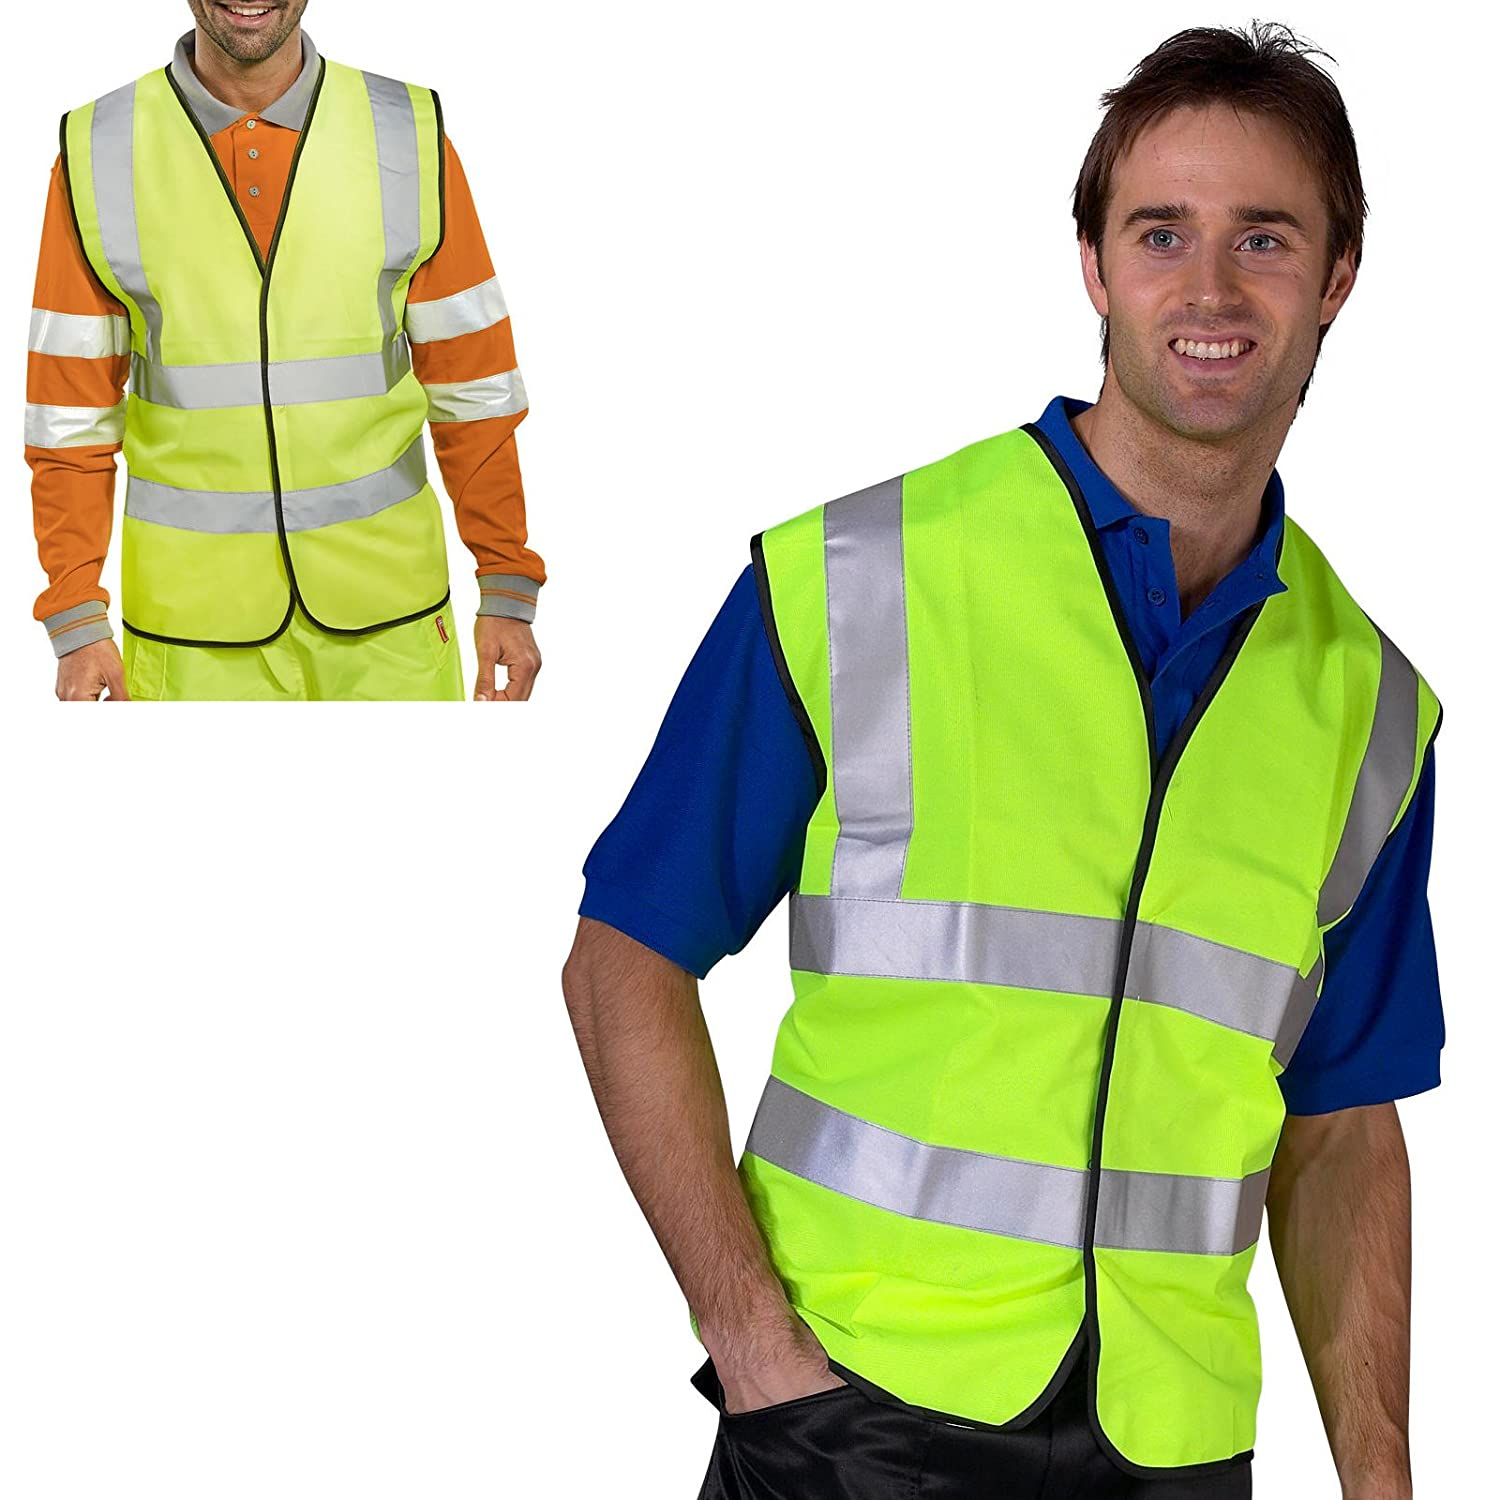 Tigerbox® Be Safe Be Seen Adult Hi-Vis Safety Vest Waistcoat (5XL) Suitable For Cycling, Driving, Motorcycle, Motorbike, Bike, Biker, Road Side - Orange Shop4accessories